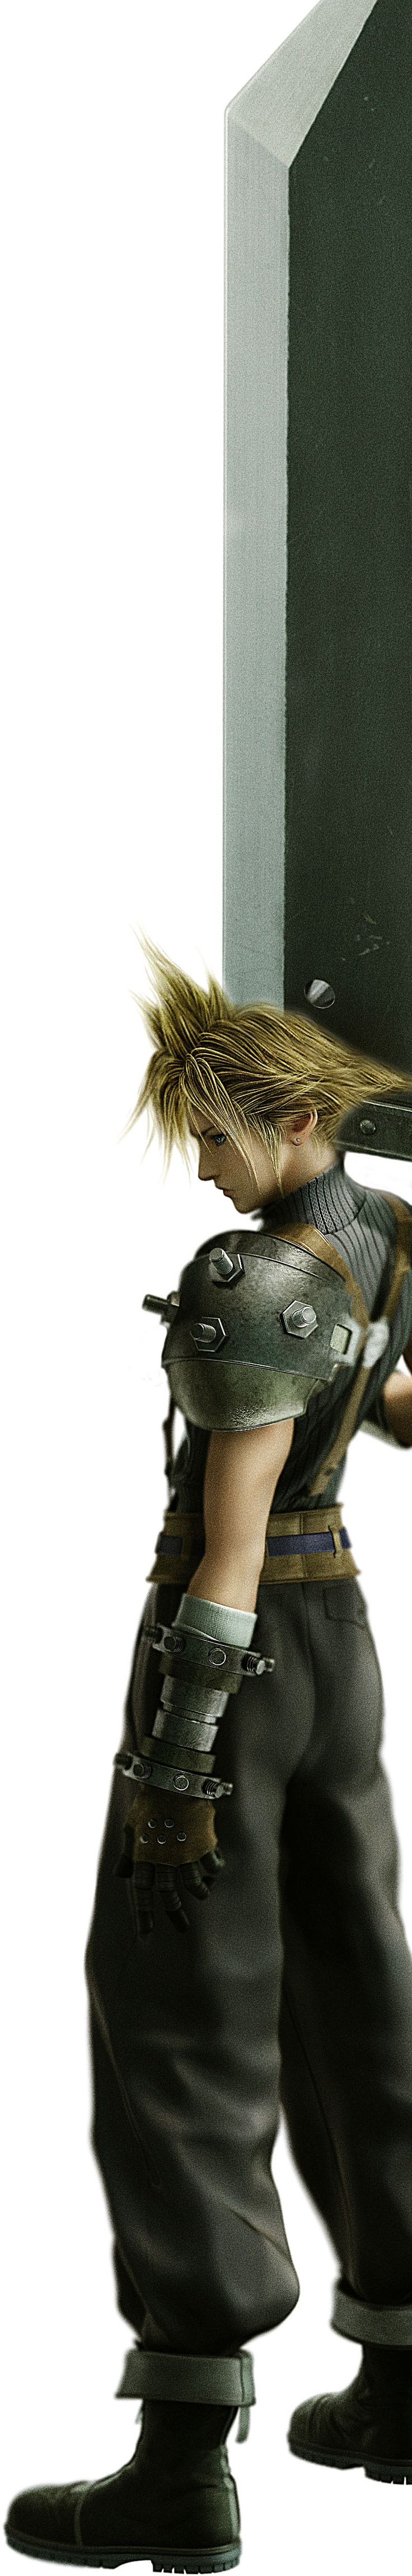 Cloud Strife from FF VII see the full walkthrough on:  http://watchandstudy.com/